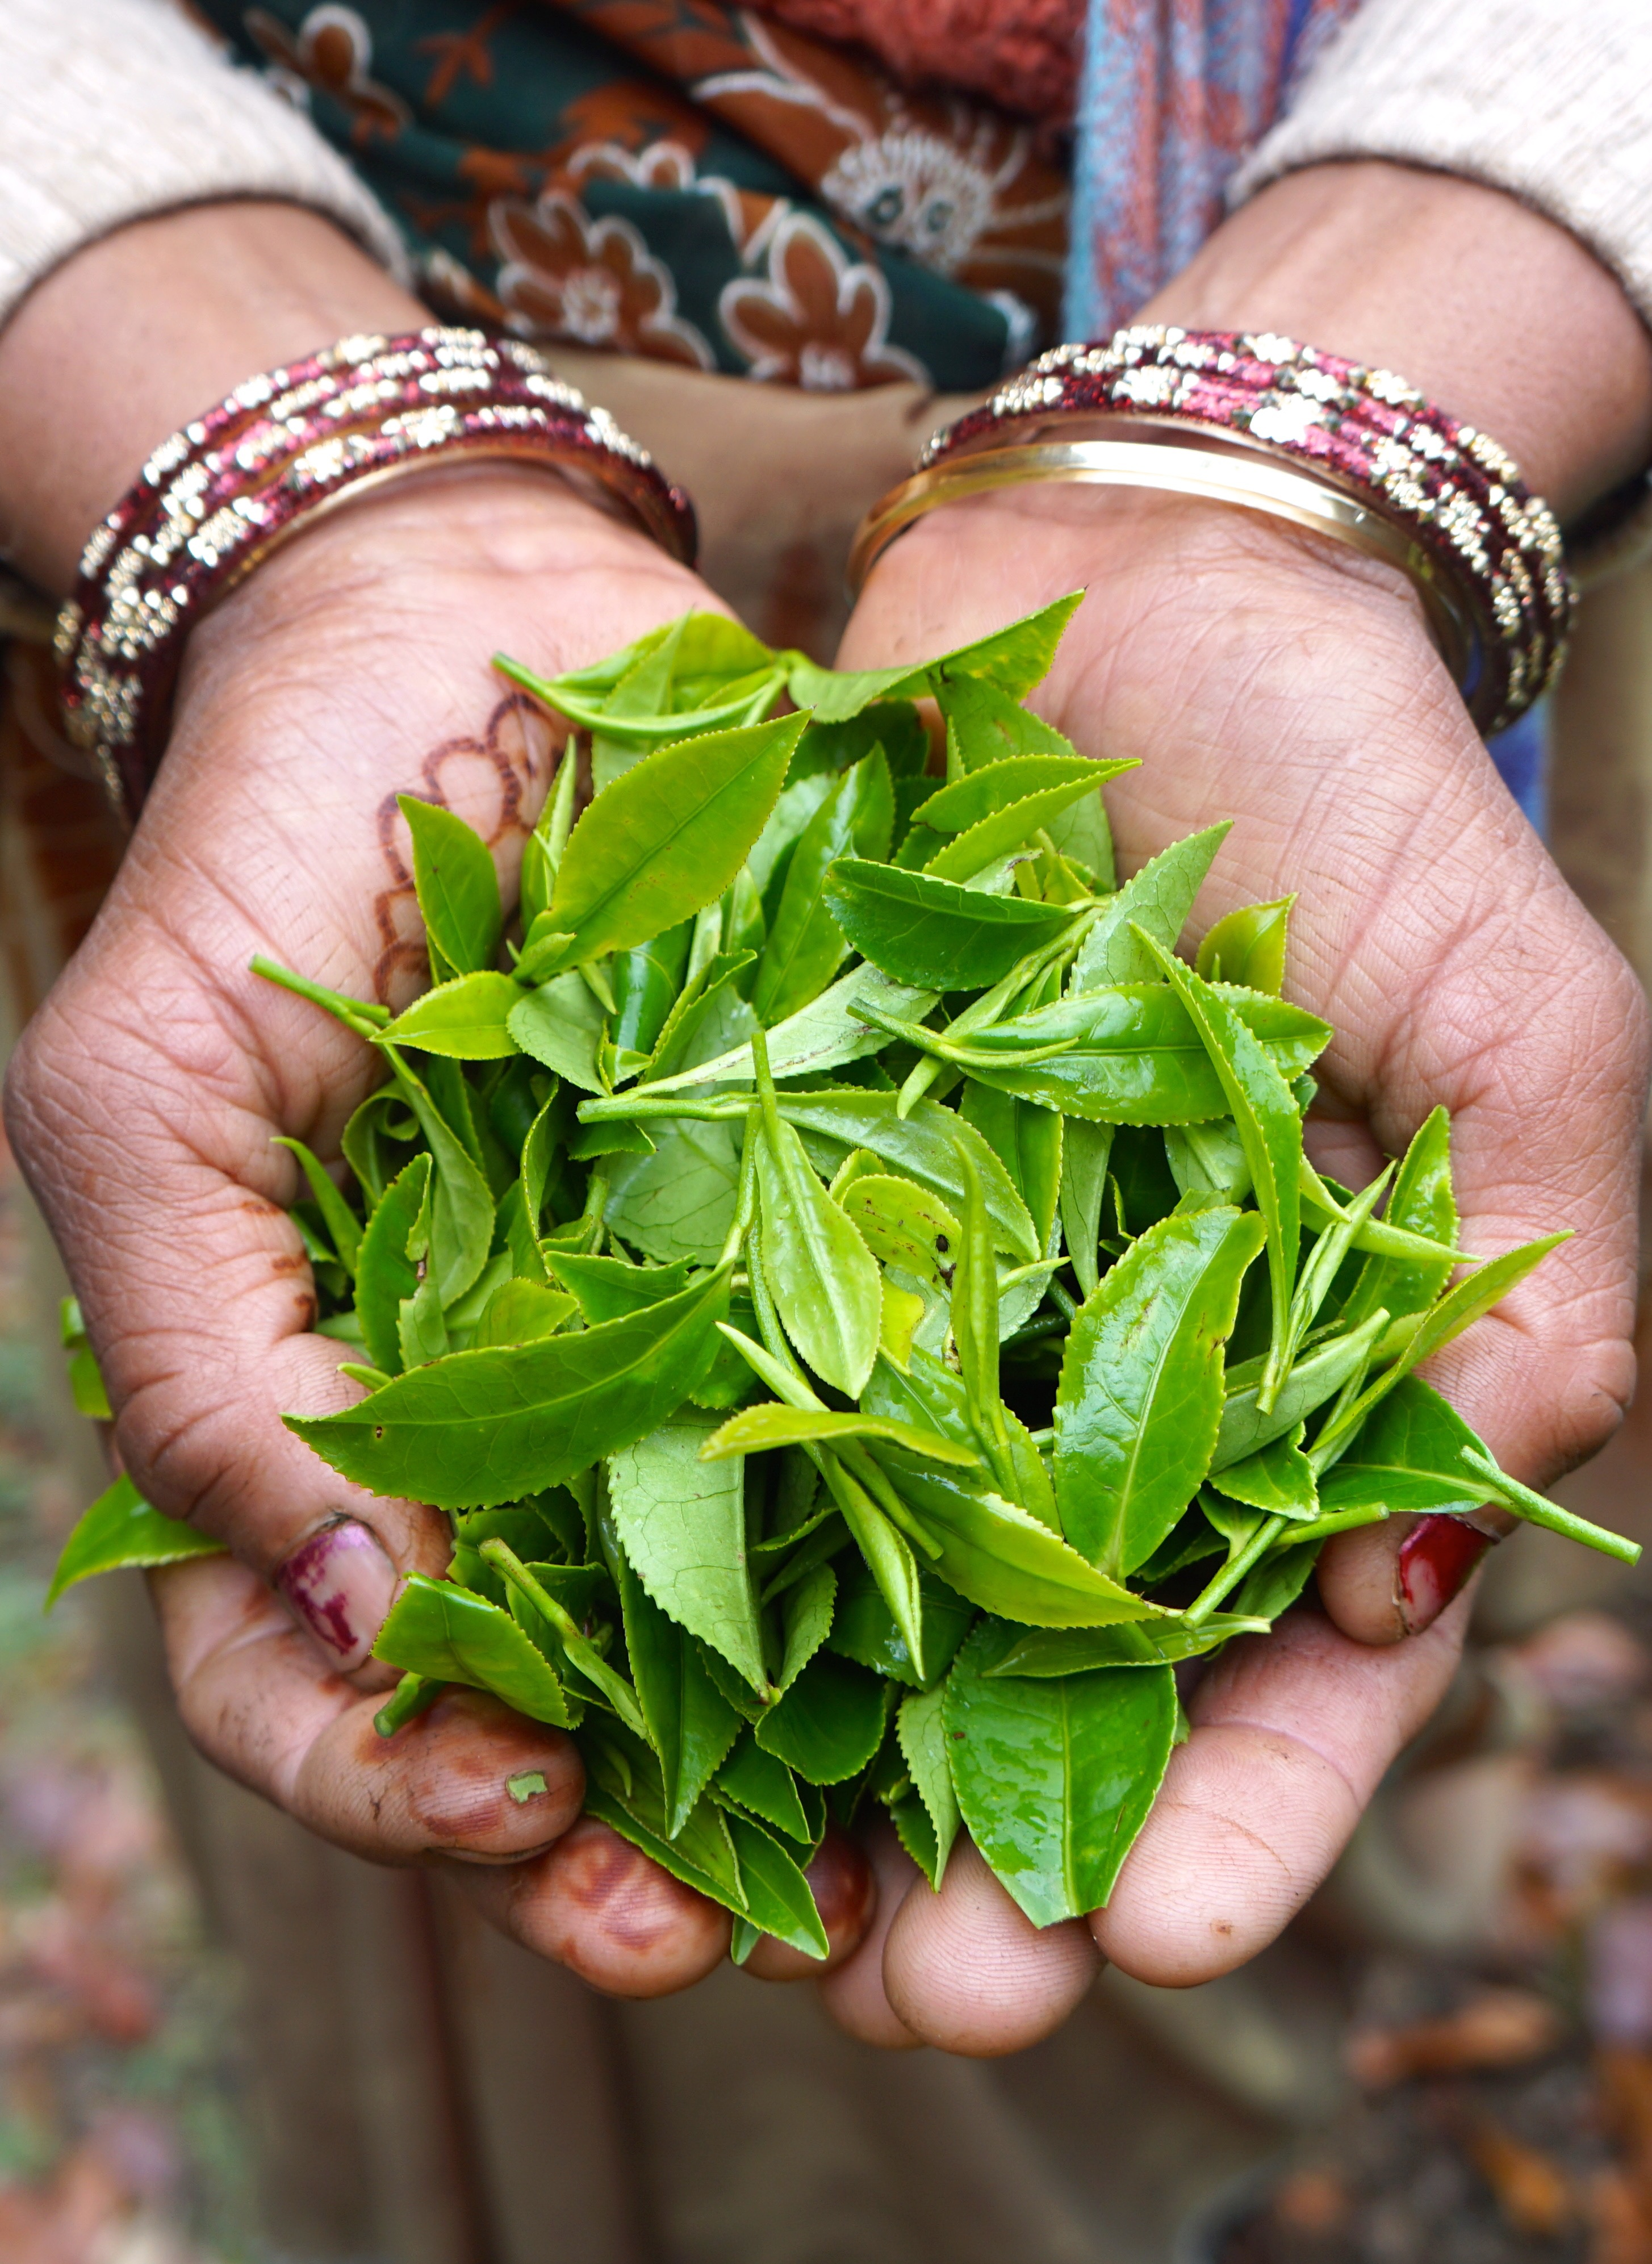 Hands making an offering holding tea leaves in India